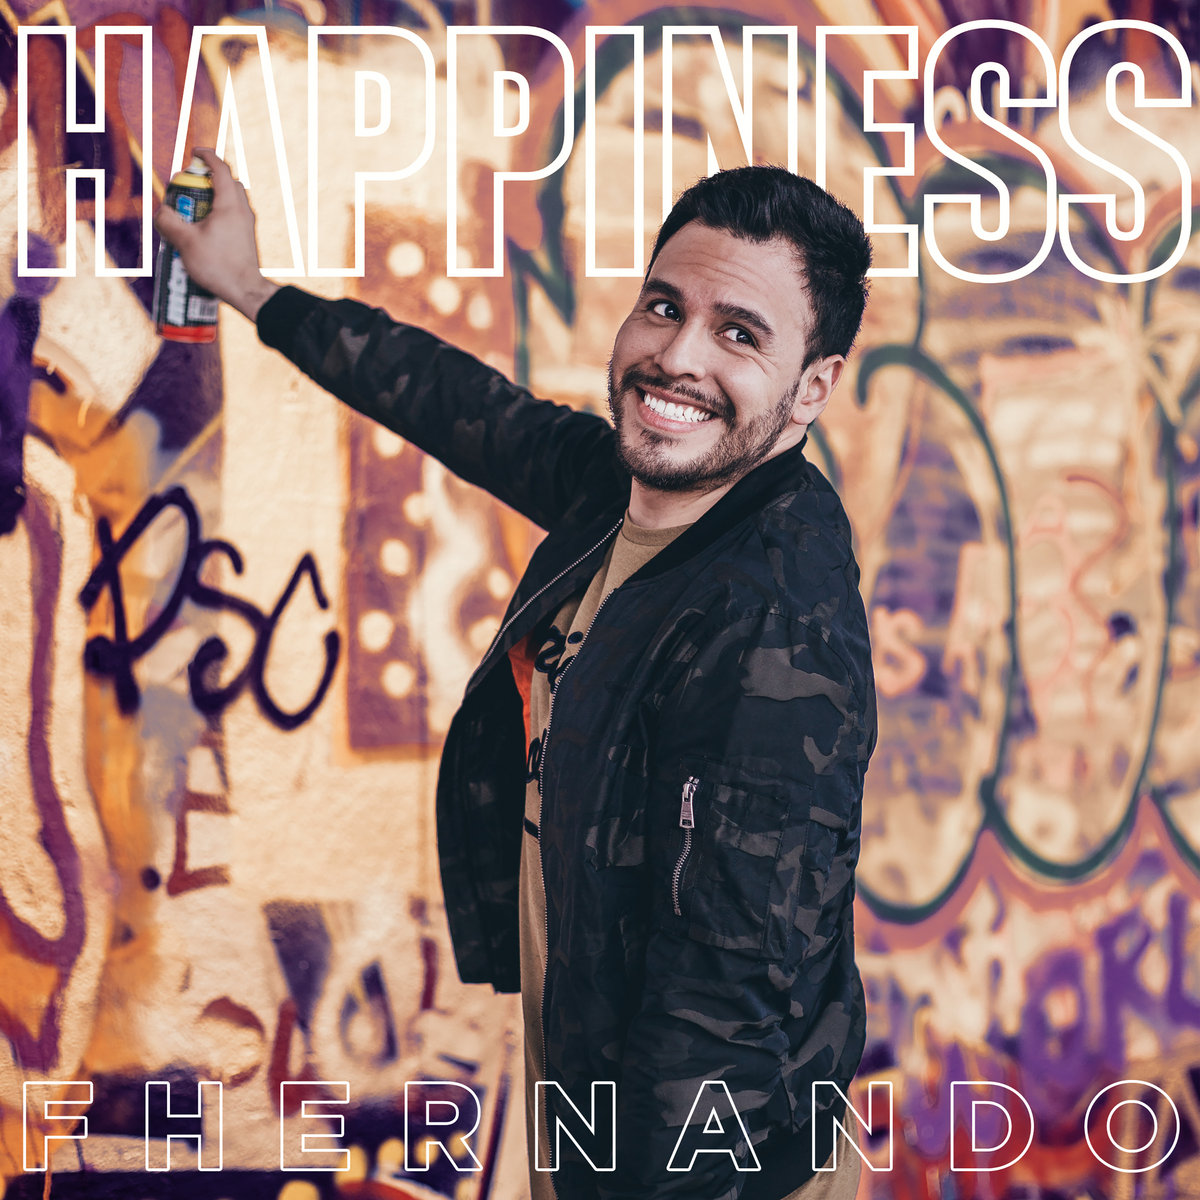 Happiness by Fhernando